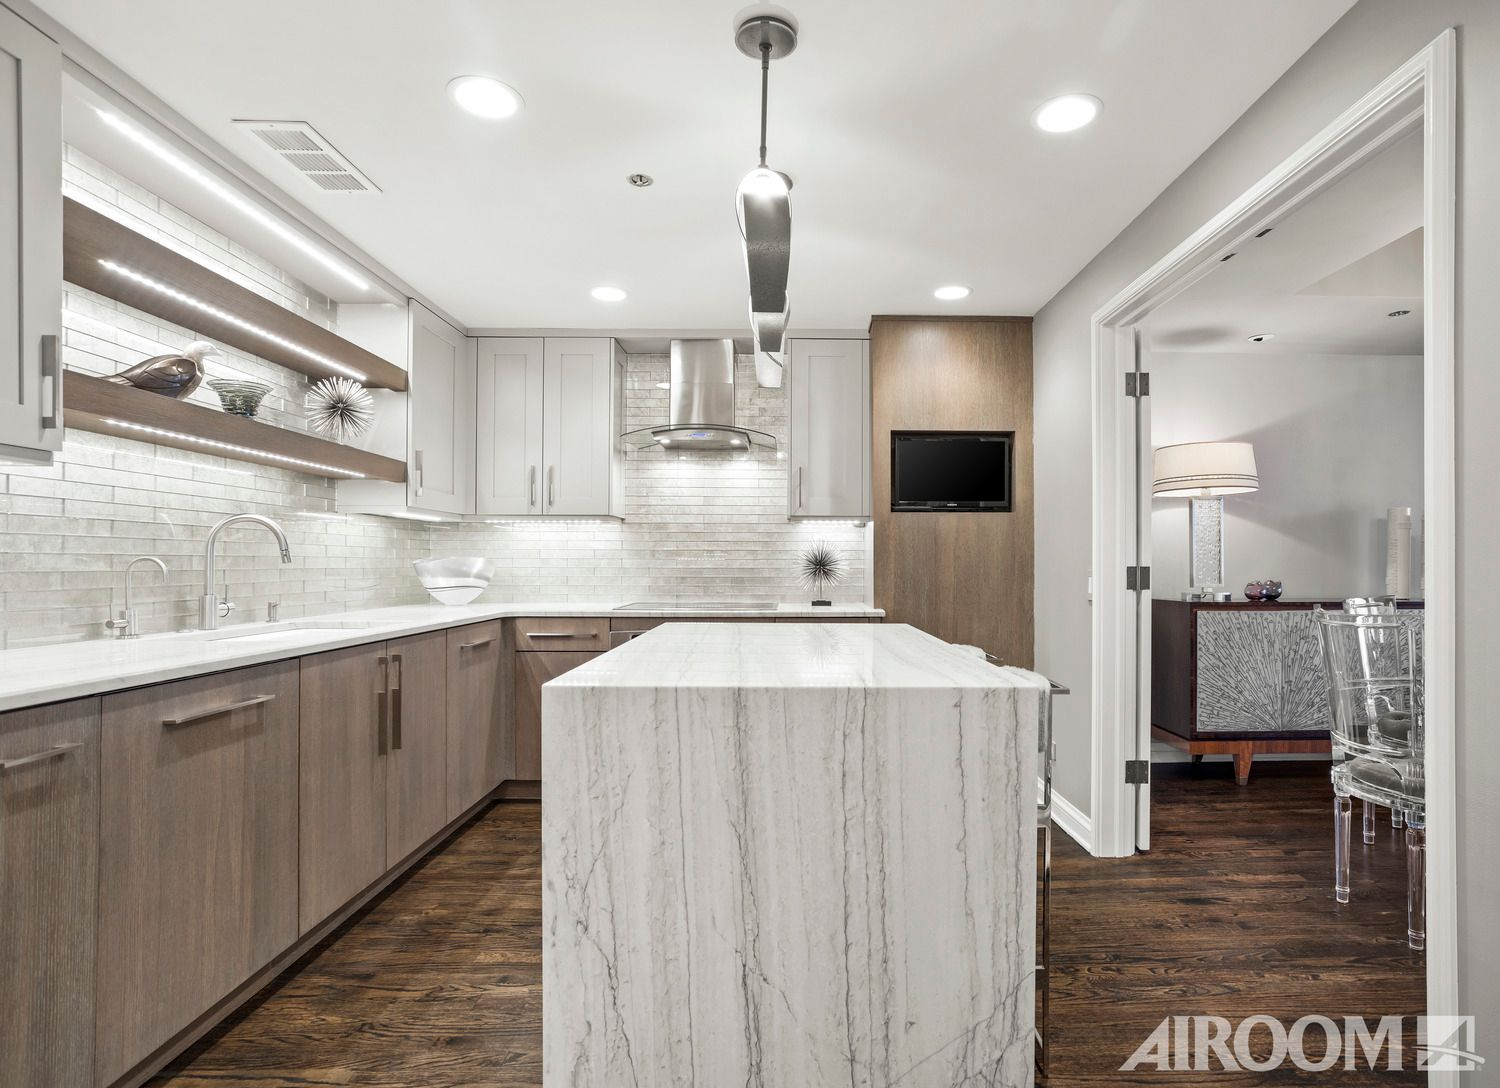 The Top 5 Tips for a Successful Home Remodel